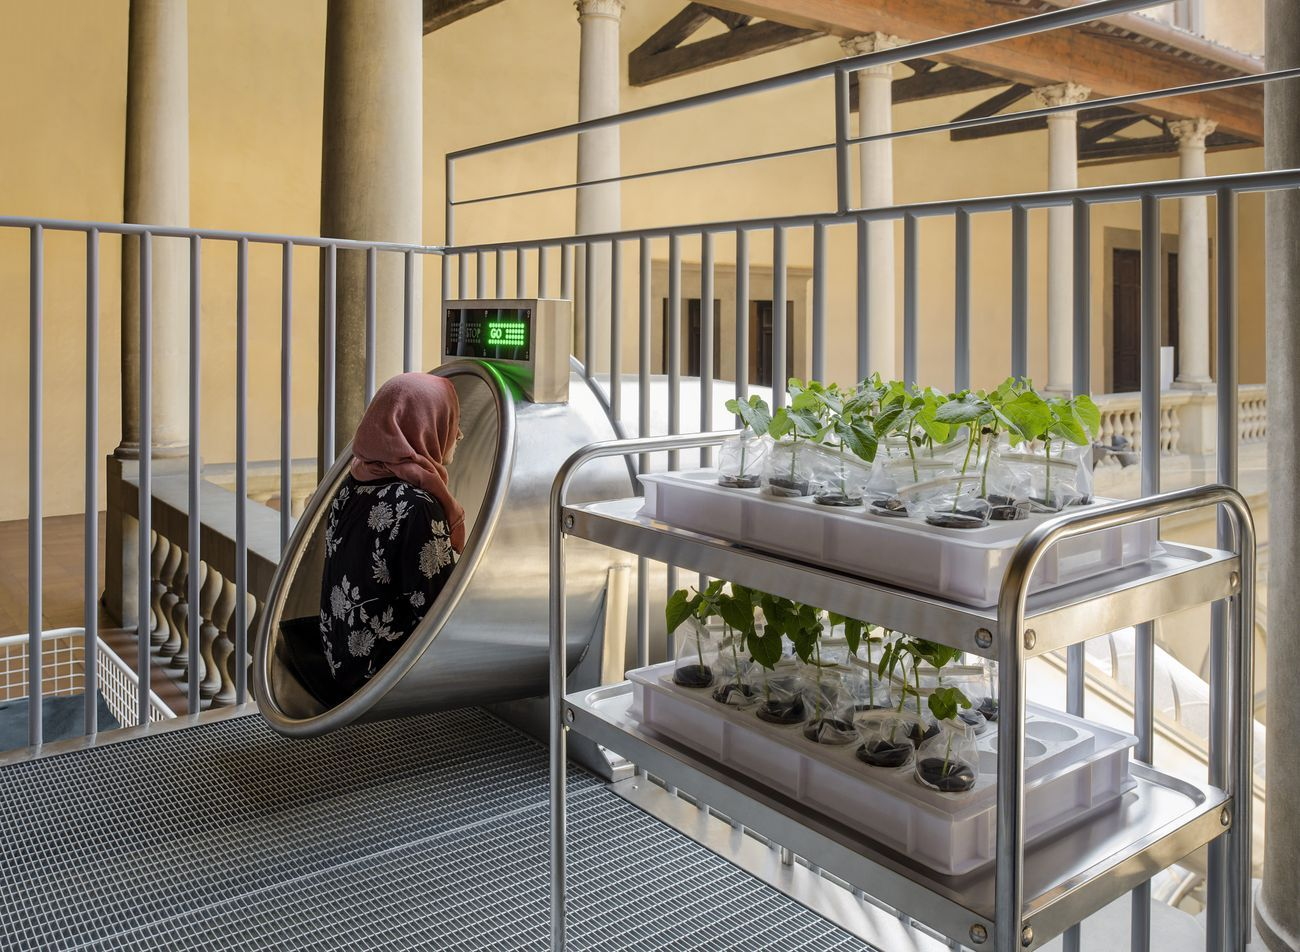 Carsten Höller, Plant Decision-Making Based on Human Smell of Fear and Joy, 2018. Installation view at Palazzo Strozzi, Firenze 2018. Photo Attilio Maranzano, courtesy the artist © Carsten Höller